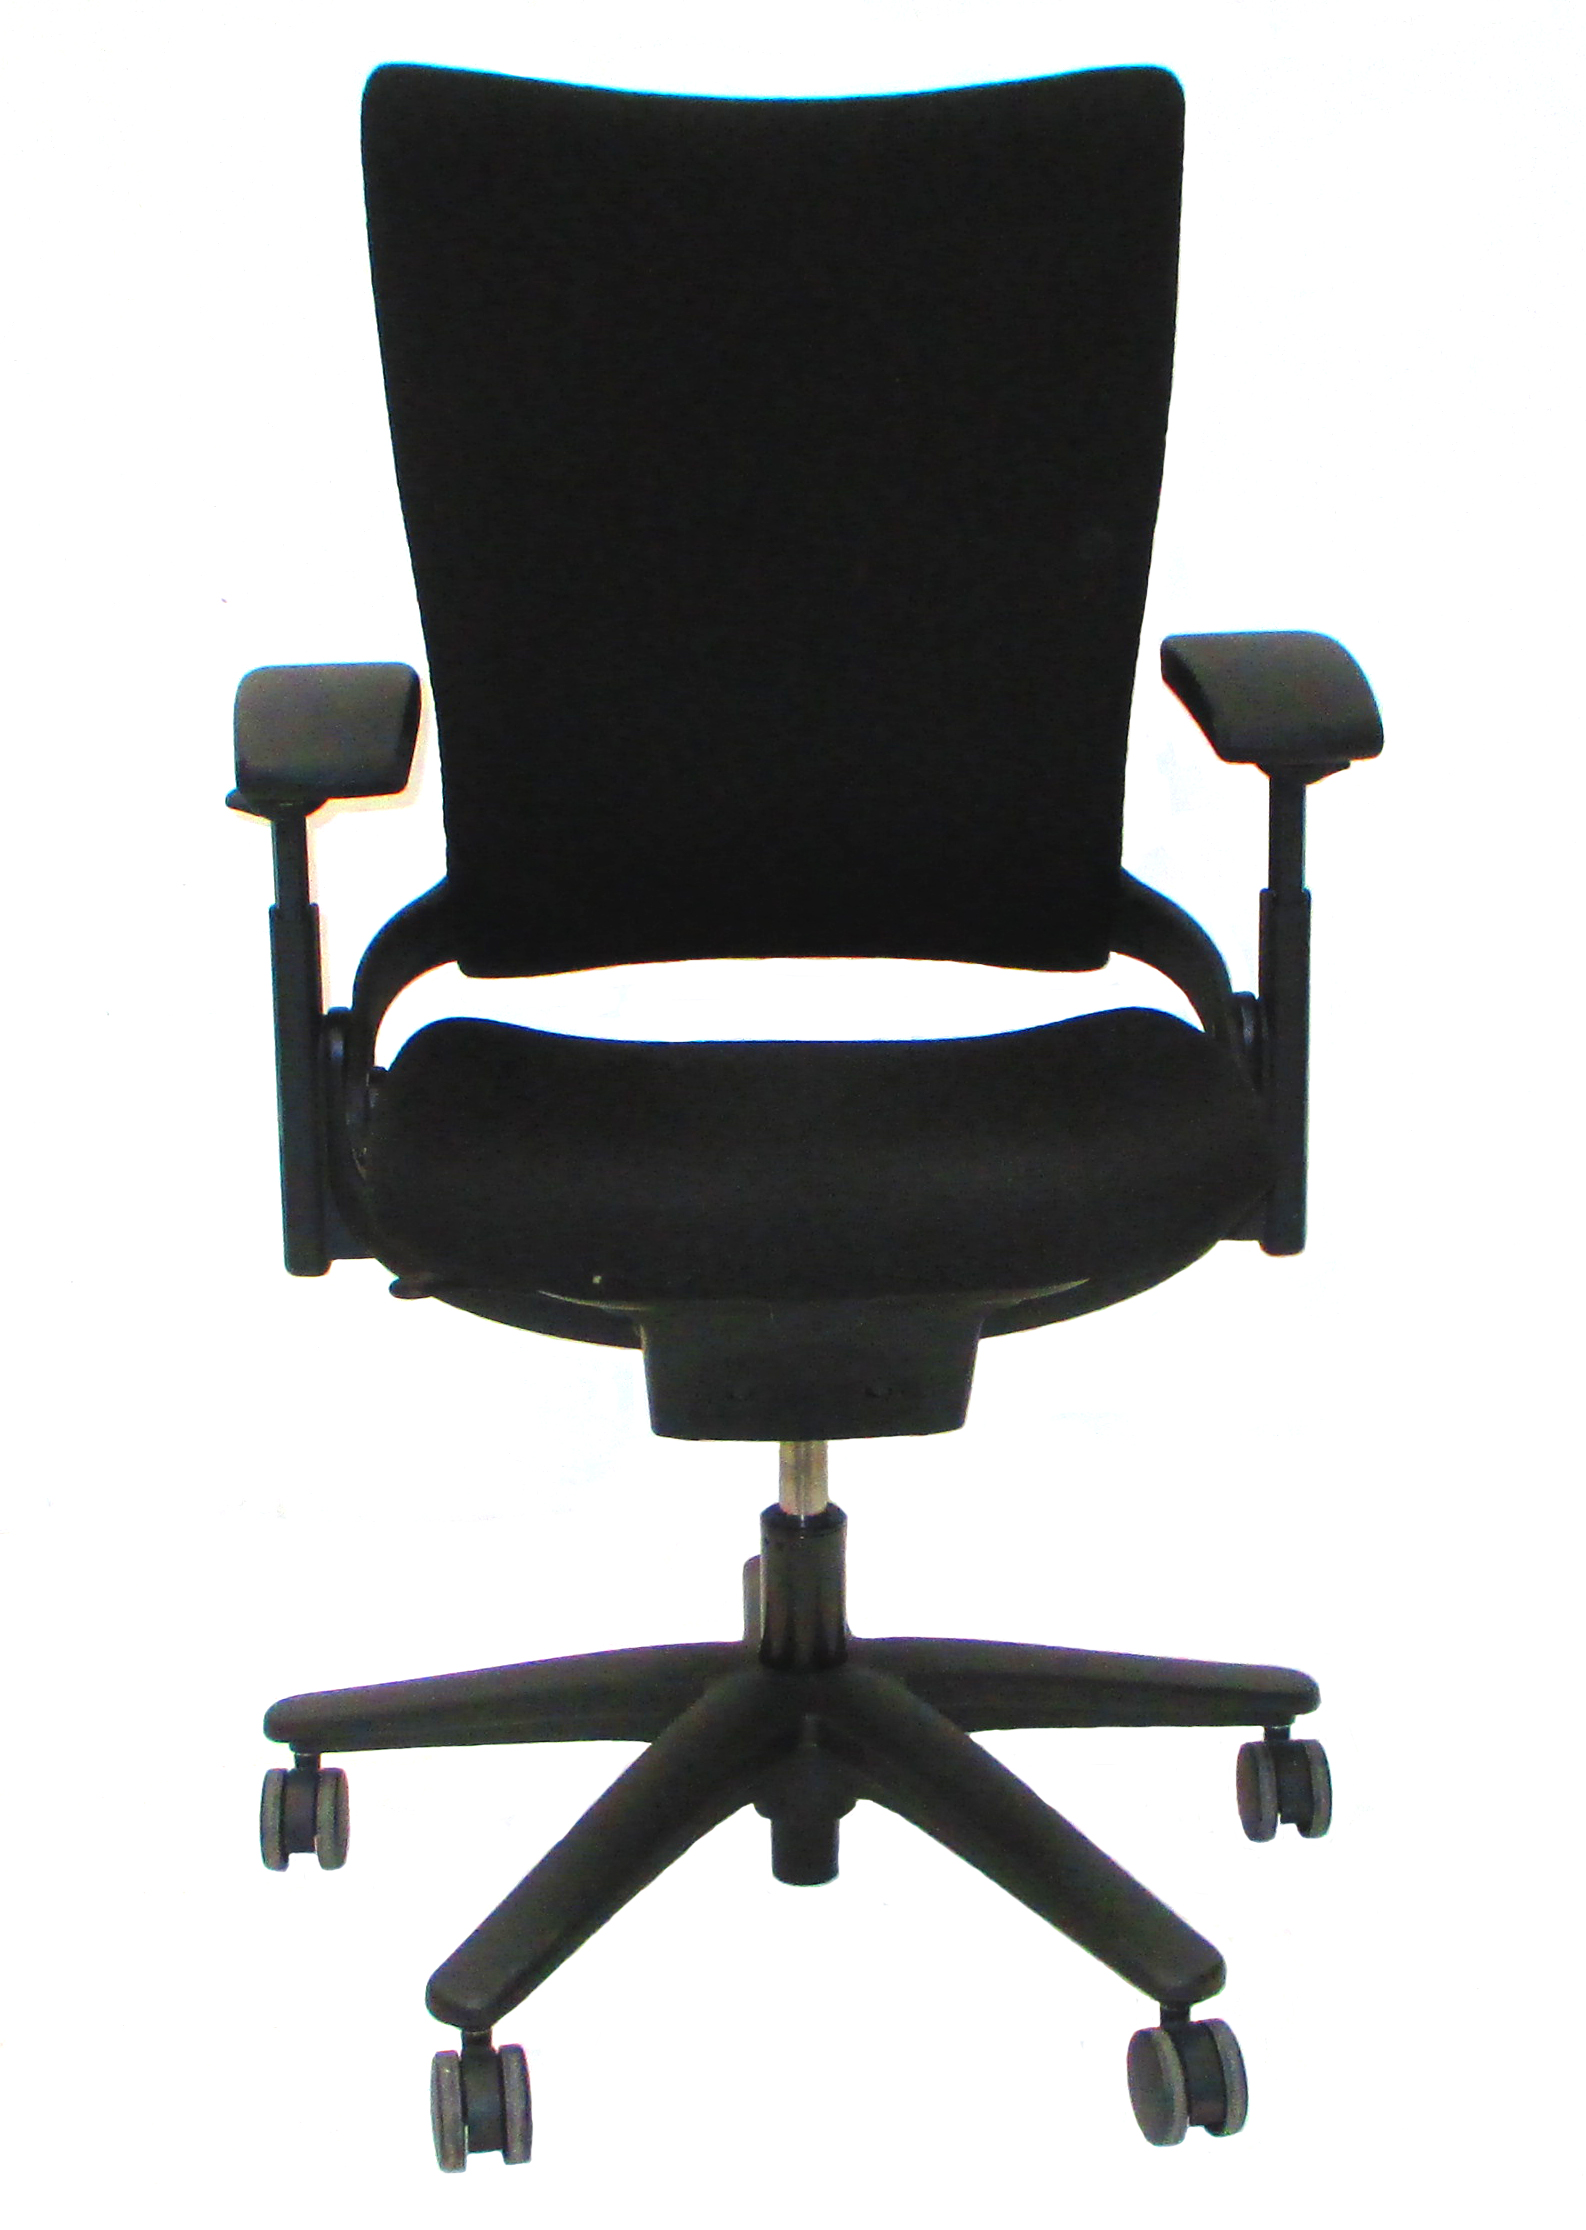 Used Office Furniture Allsteel Sum Task Chair With Black Fabric